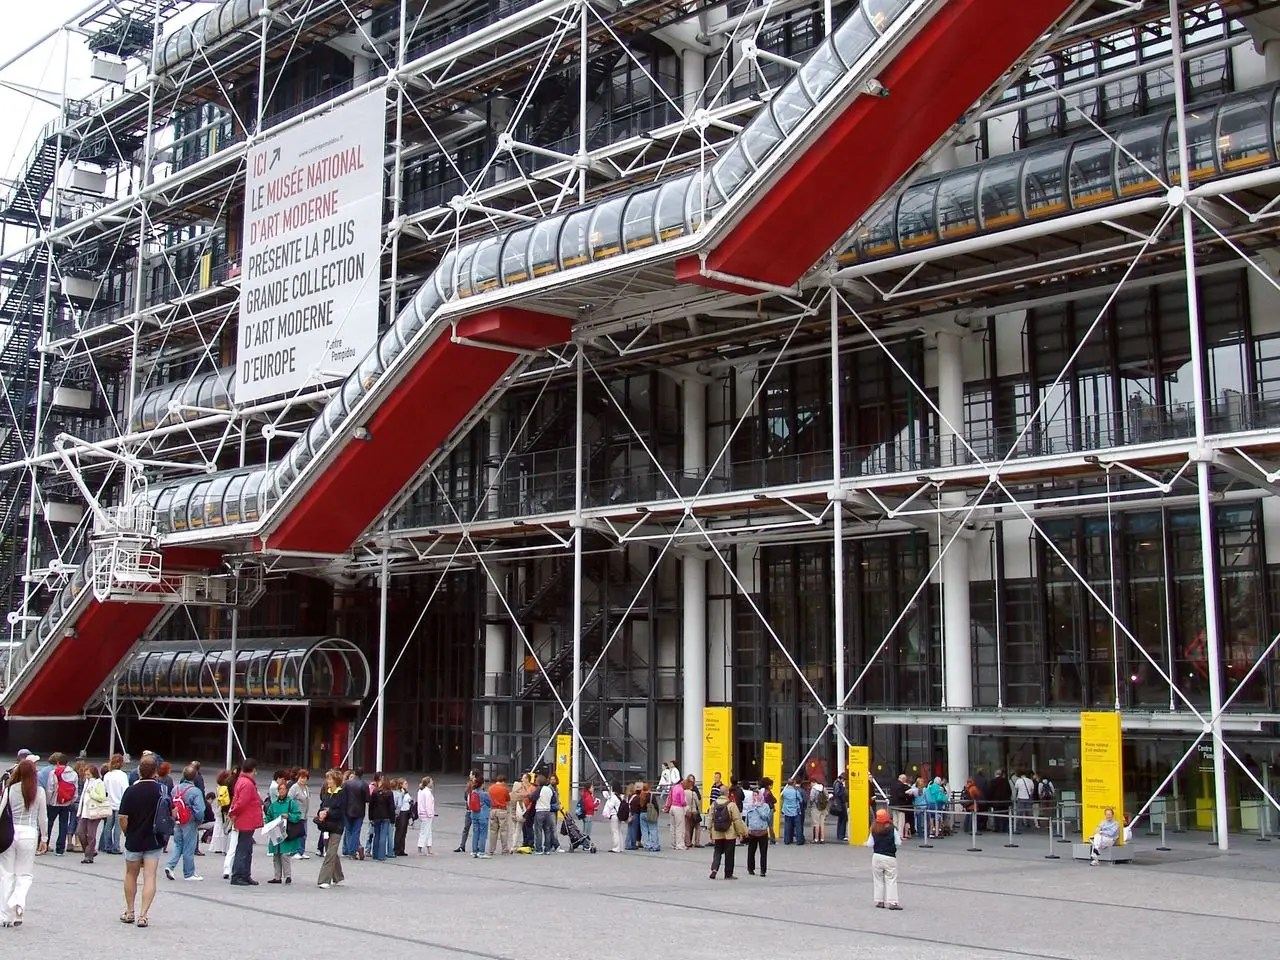 The Centre Georges Pompidou in Paris, France has all of its elevators, stairs, and pipes on the outside of the building. As a result, interior walls can be rearranged to adjust floorplans as exhibits change.